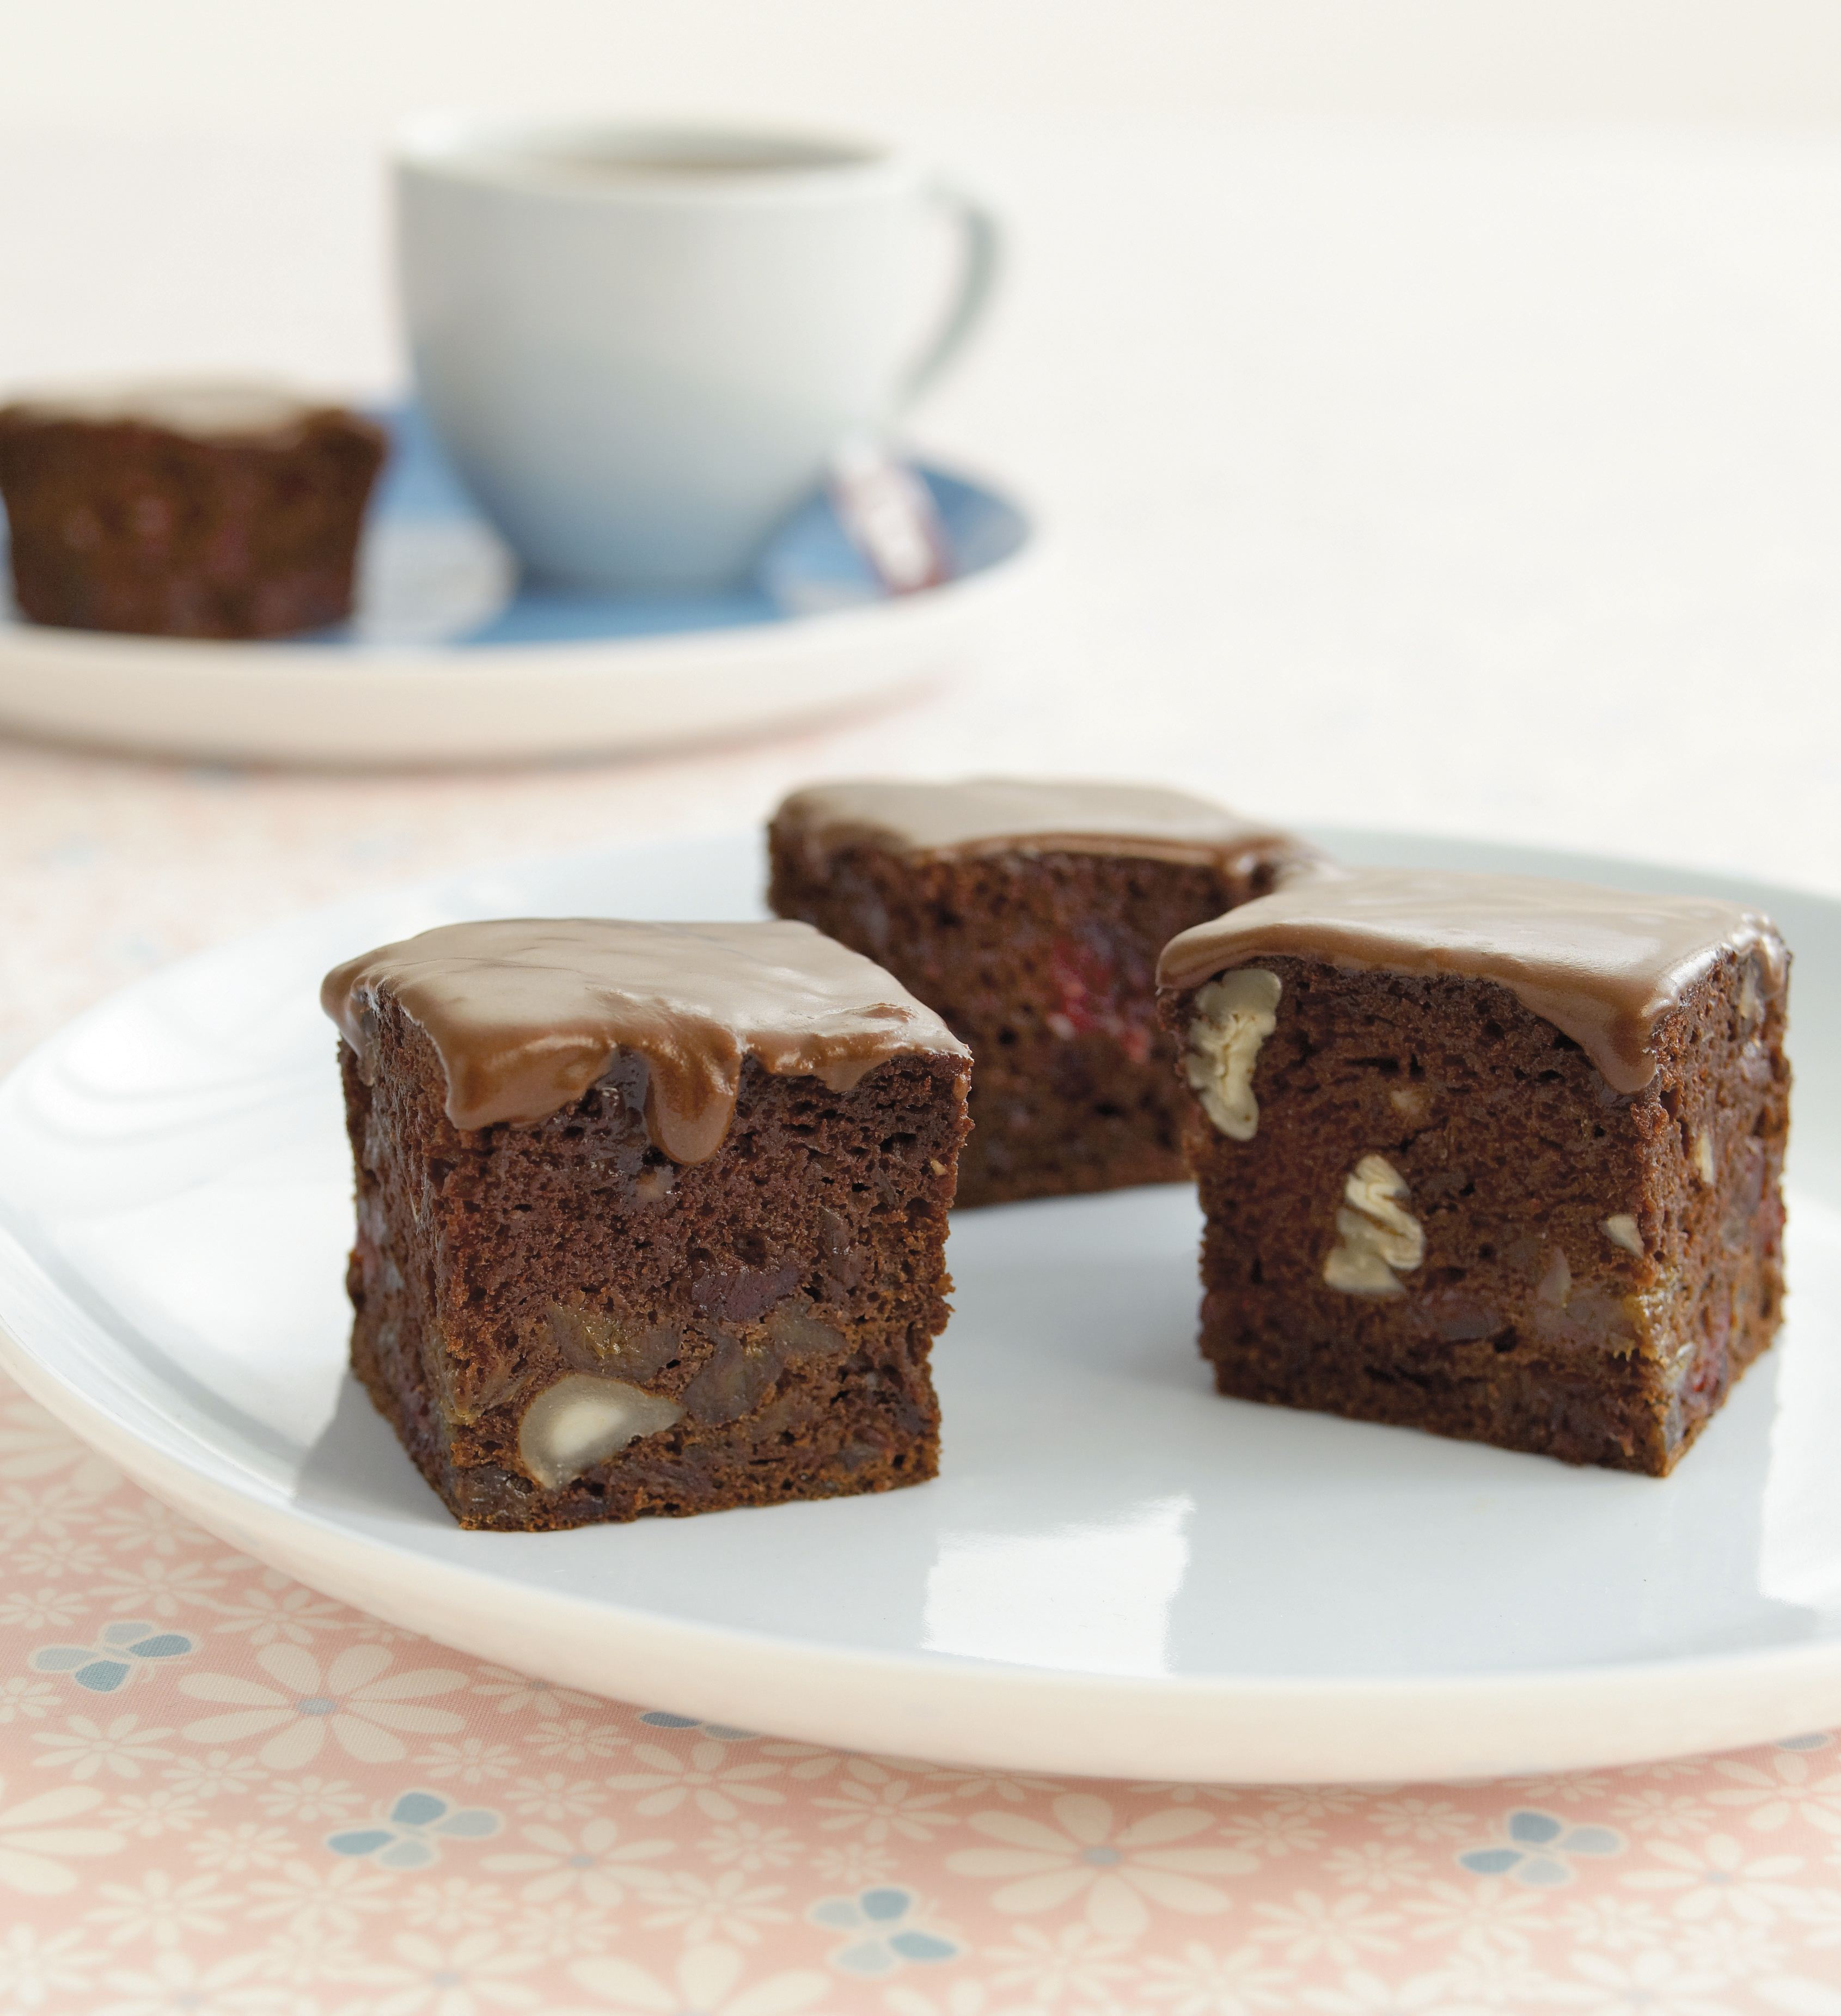 Date, prune and craisin brownie slice